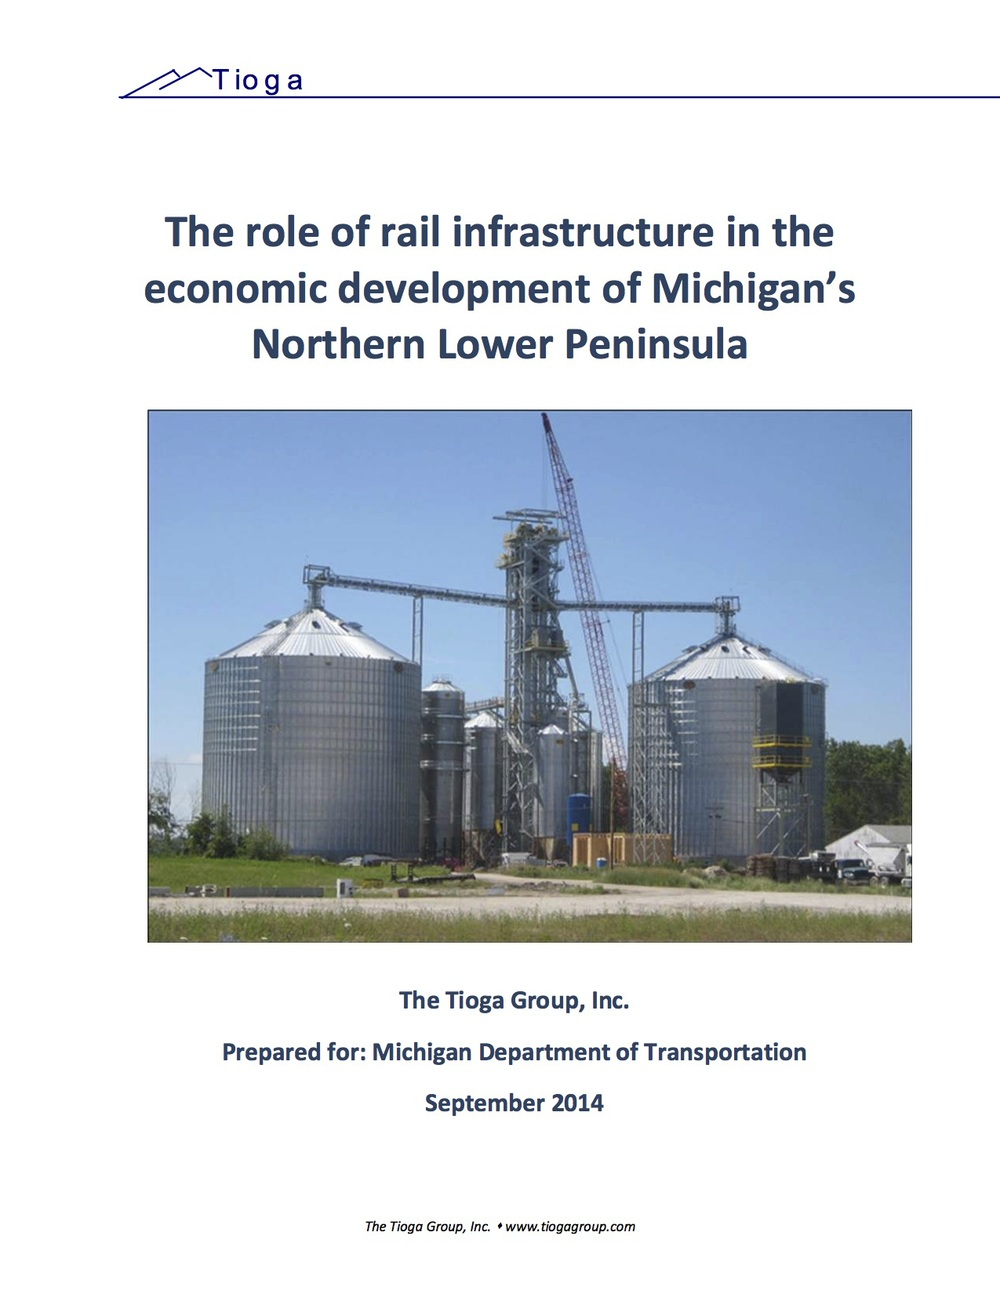 The role of rail infrastructure in the economic development of Michigan's Northern Lower Peninsula